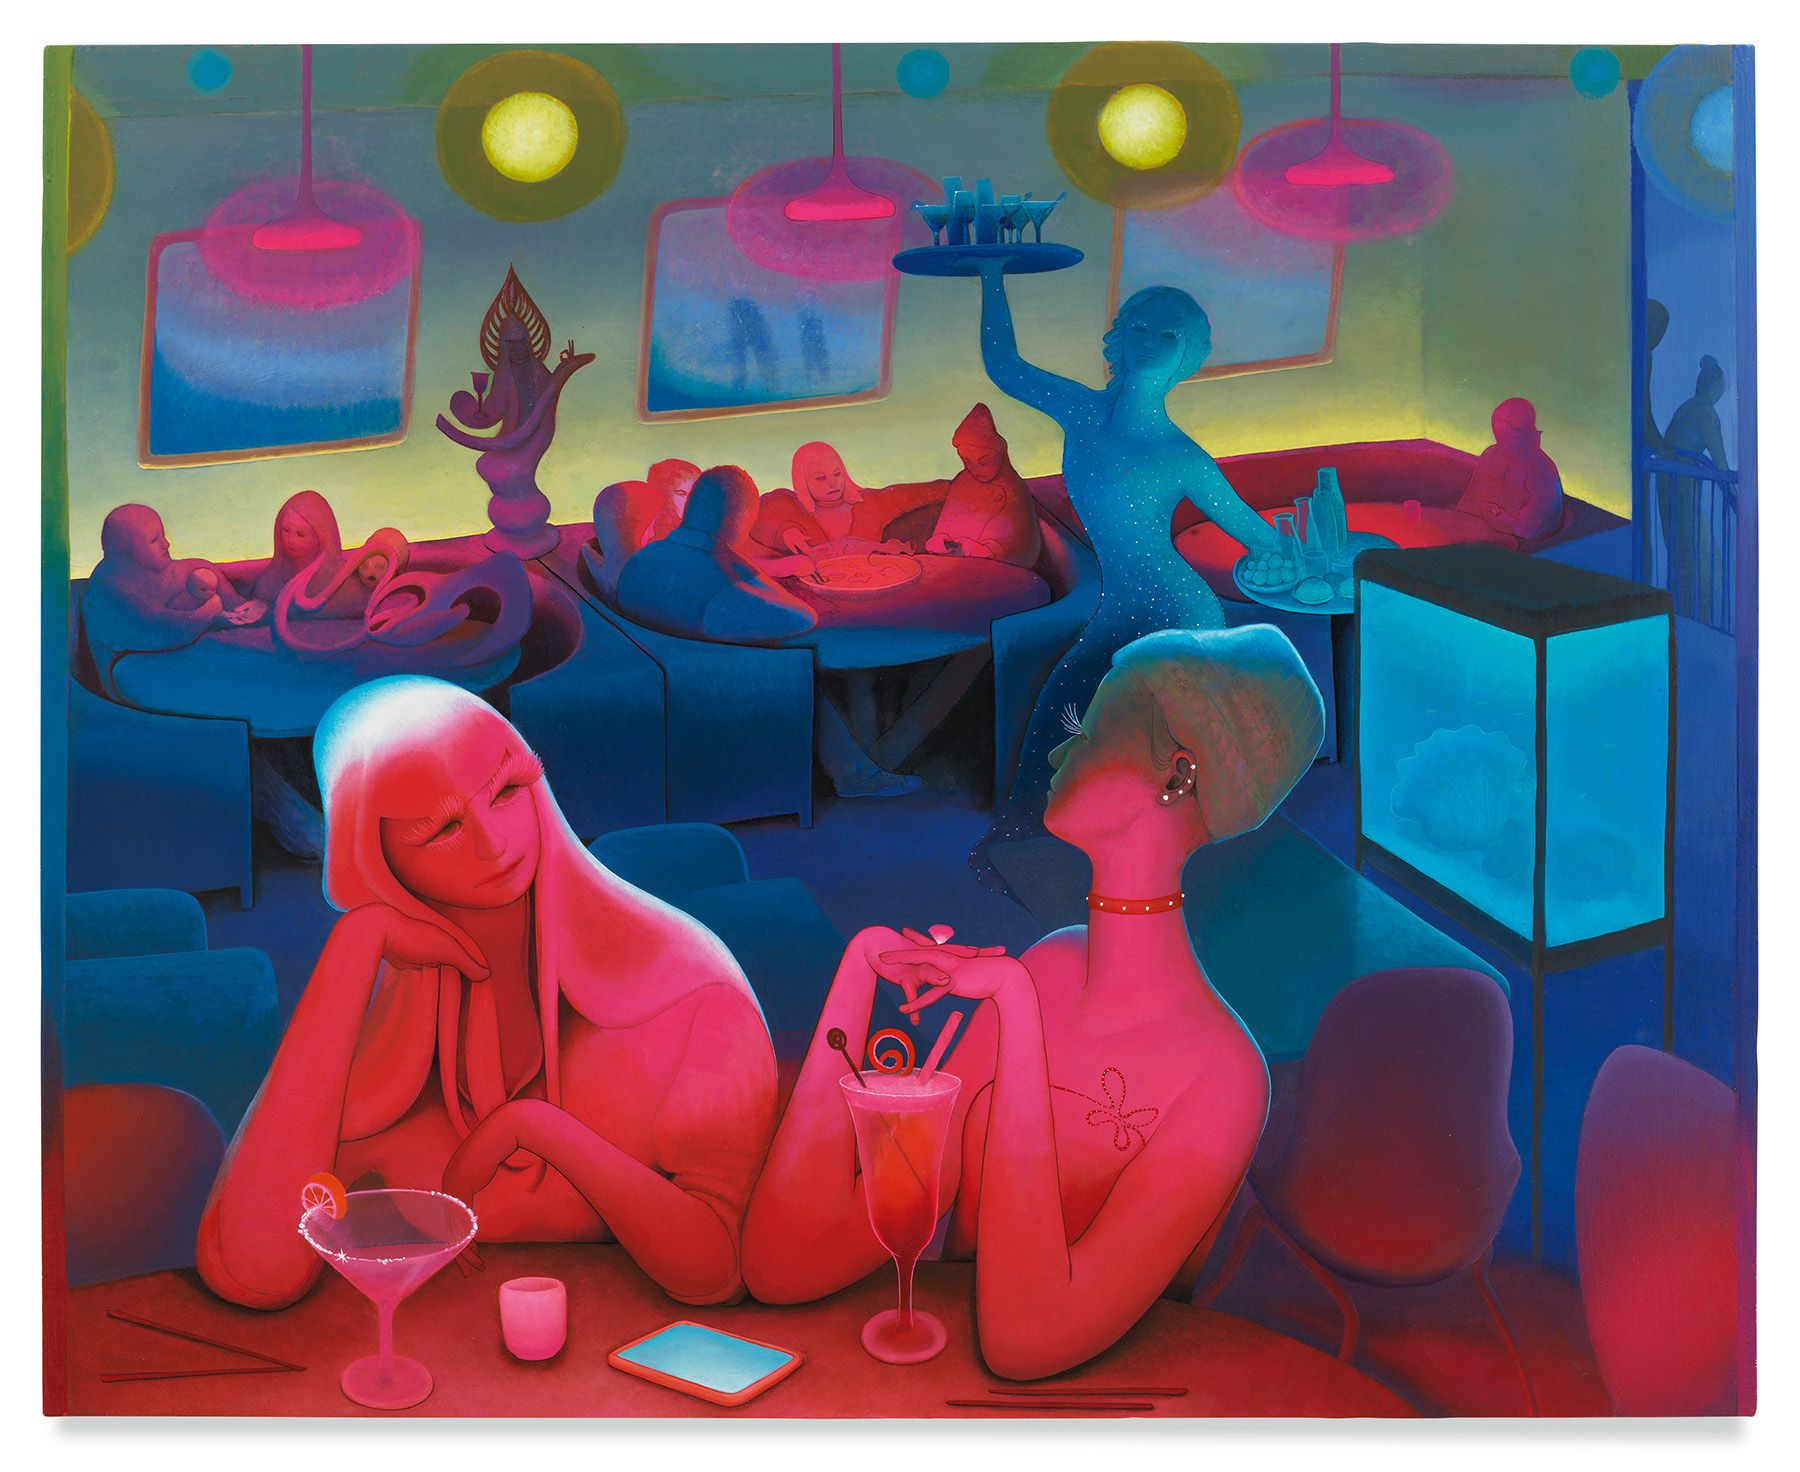 Mission Chinese Restaurant, 2020, Enamel on canvas, 40 x 50 inches,101.6 x 127 cm,MMG#32009